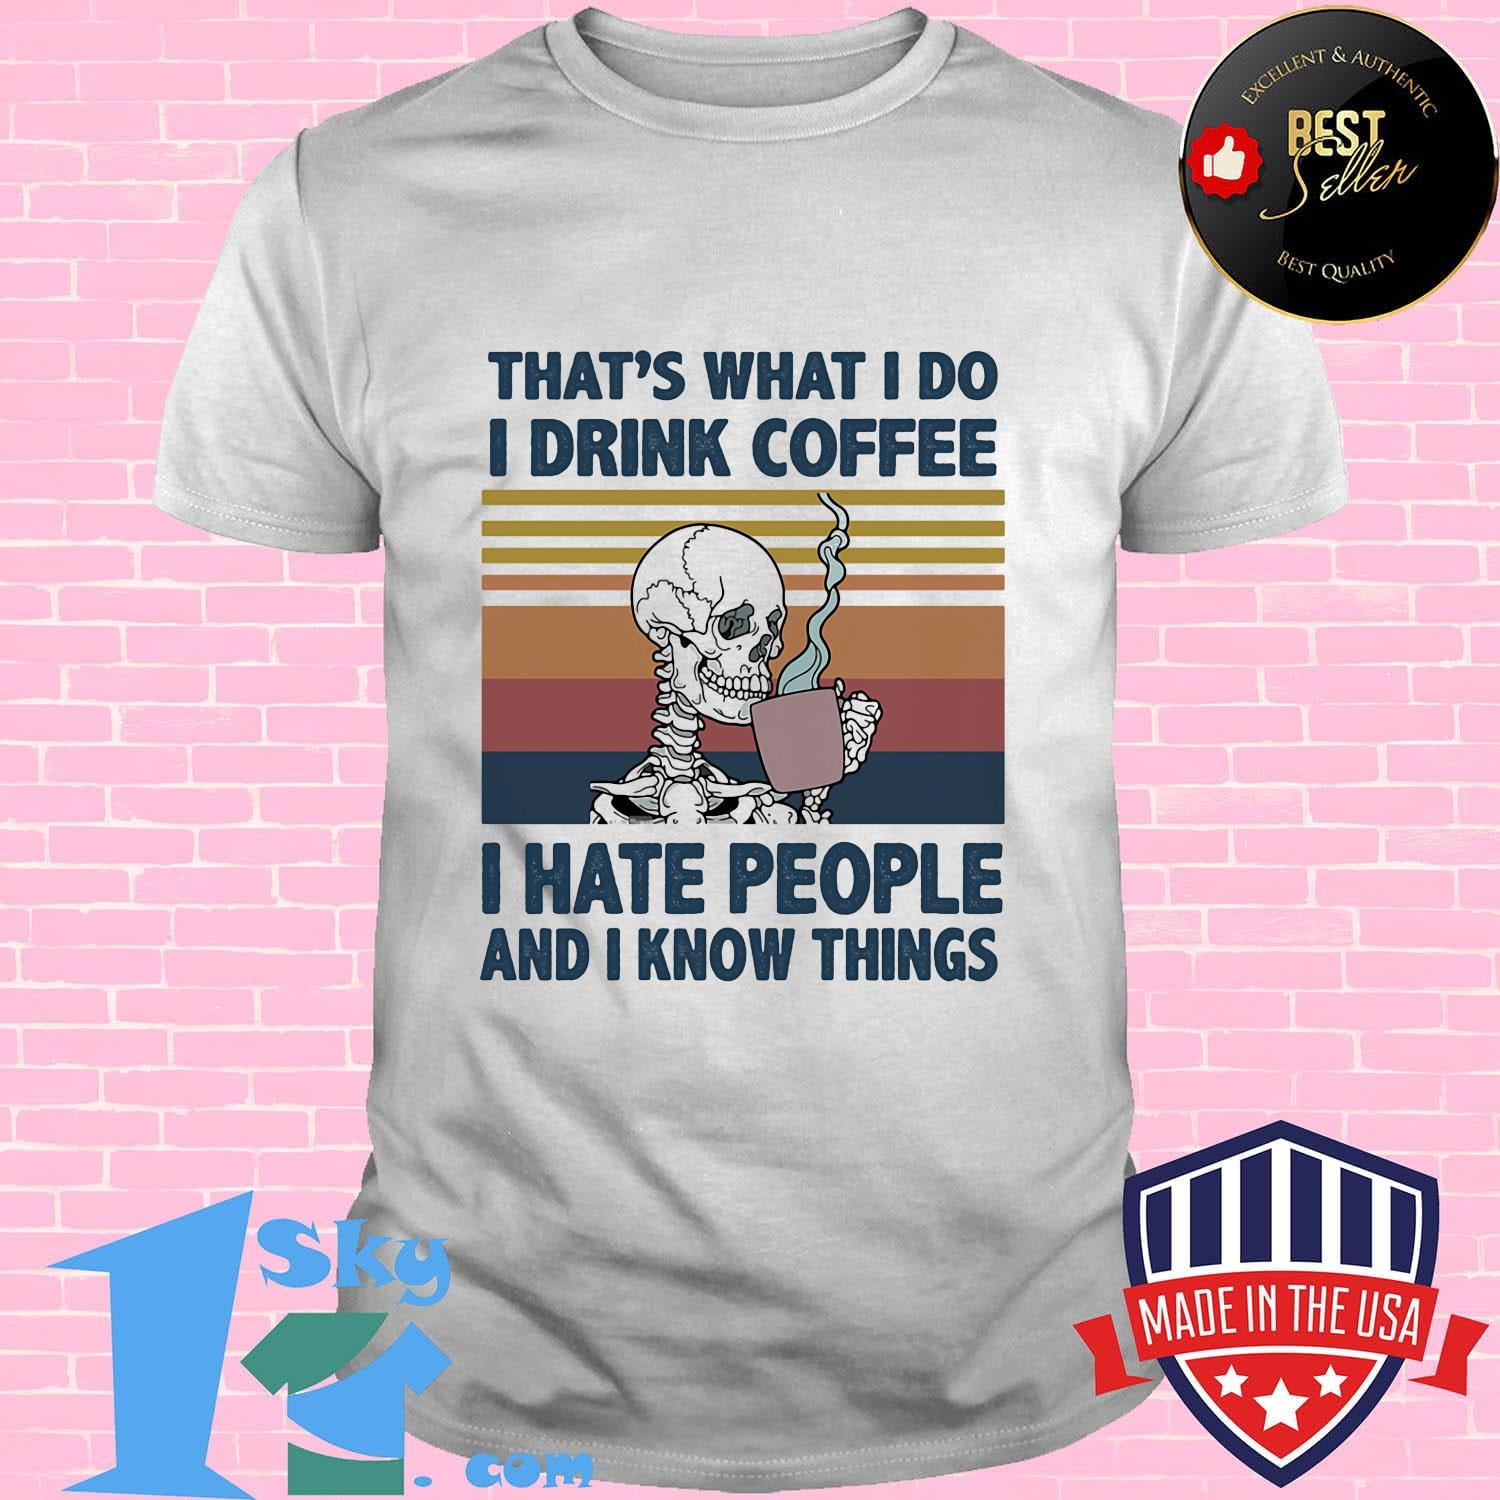 e2ae9a1e that s what i do i drink coffee i hate people and i know things skeleton vintage retro shirt unisex - Shop trending - We offer all trend shirts - 1SkyTee